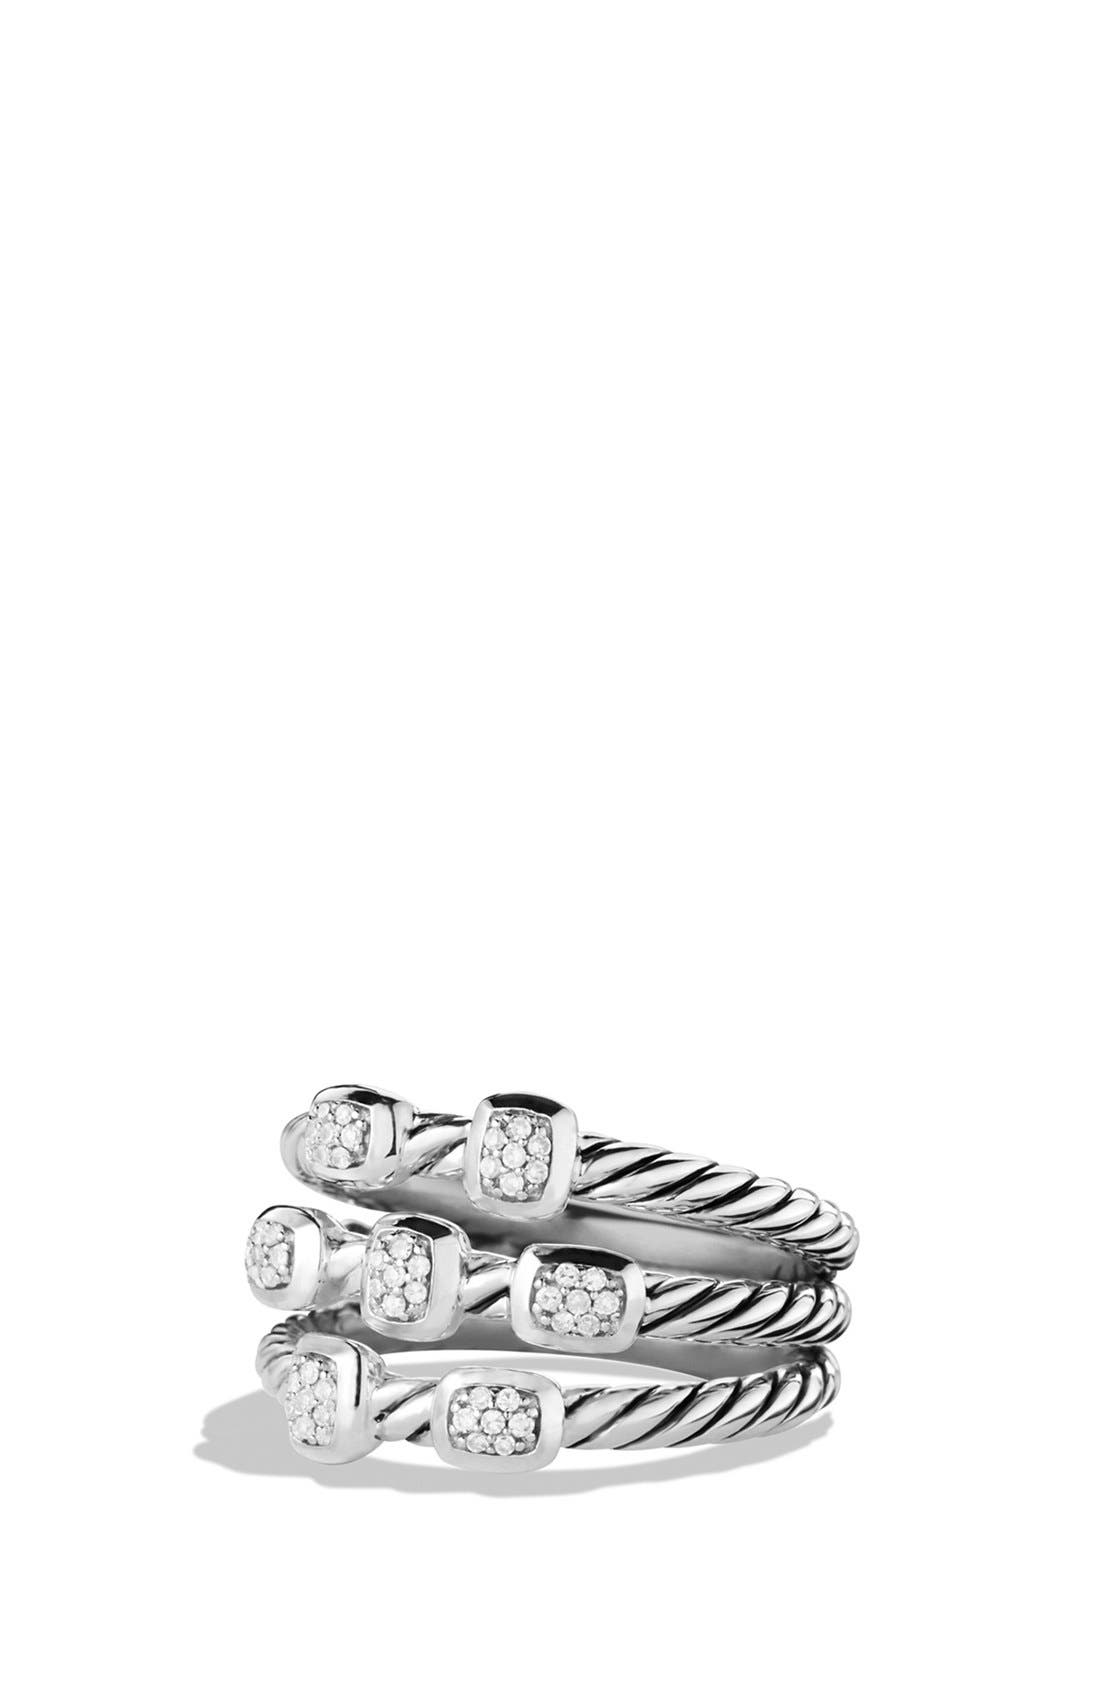 'Confetti' Ring with Diamonds,                             Main thumbnail 1, color,                             040